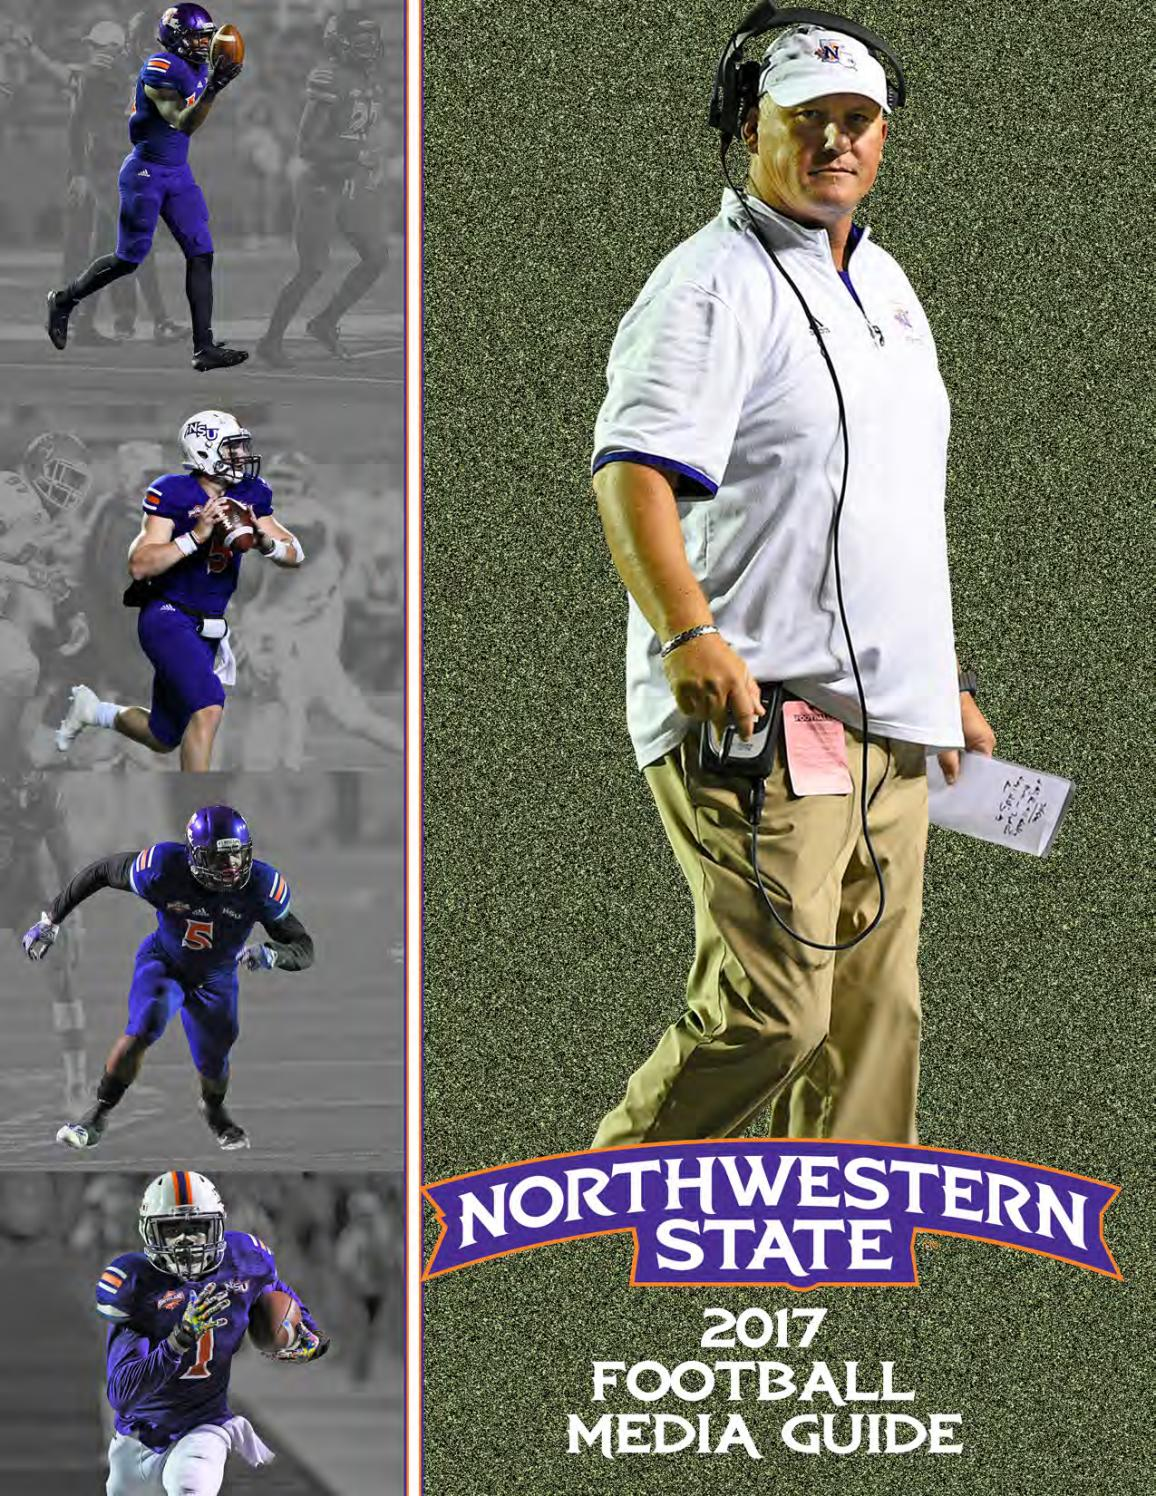 55c86536058 2017 Northwestern State Football Media Guide by Northwestern State Sports  Information - issuu